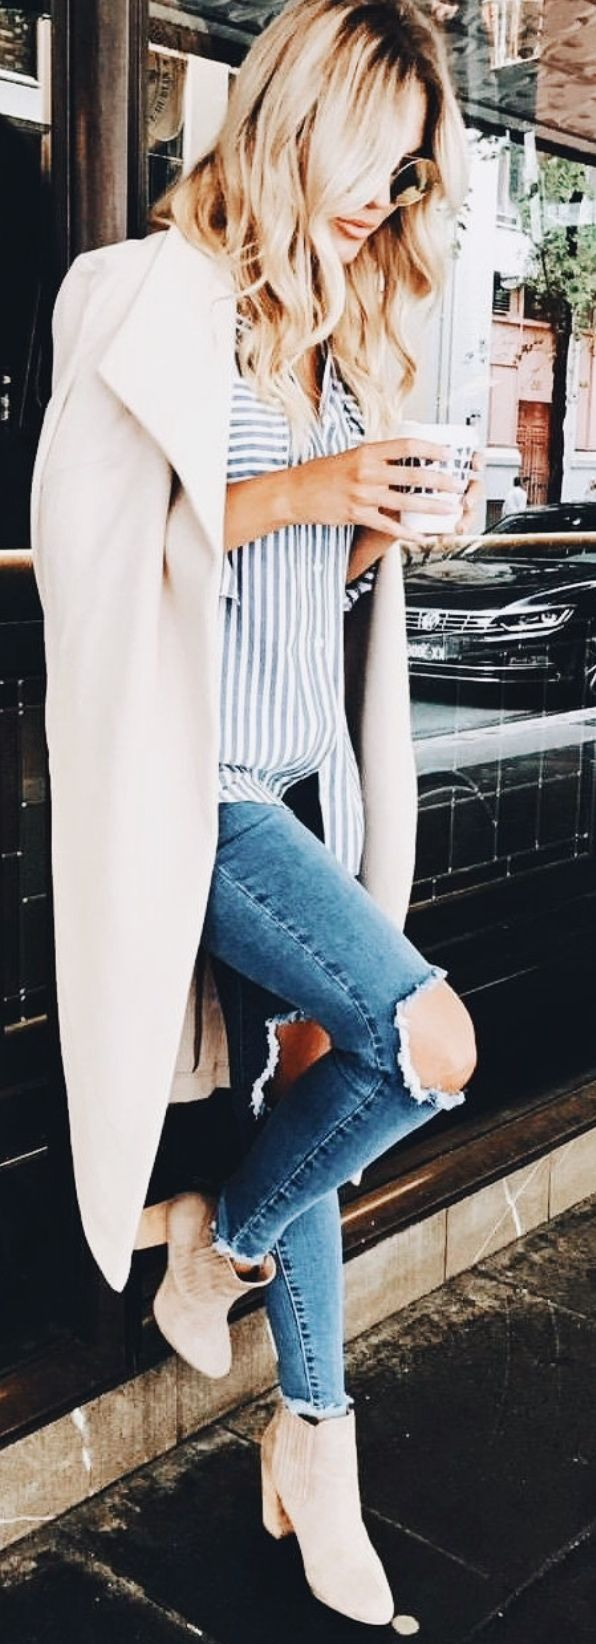 Tan Trench Coat, White/Blue Striped Button Down Top, Light Wash Ripped Jeans, Tan Ankle Booties.